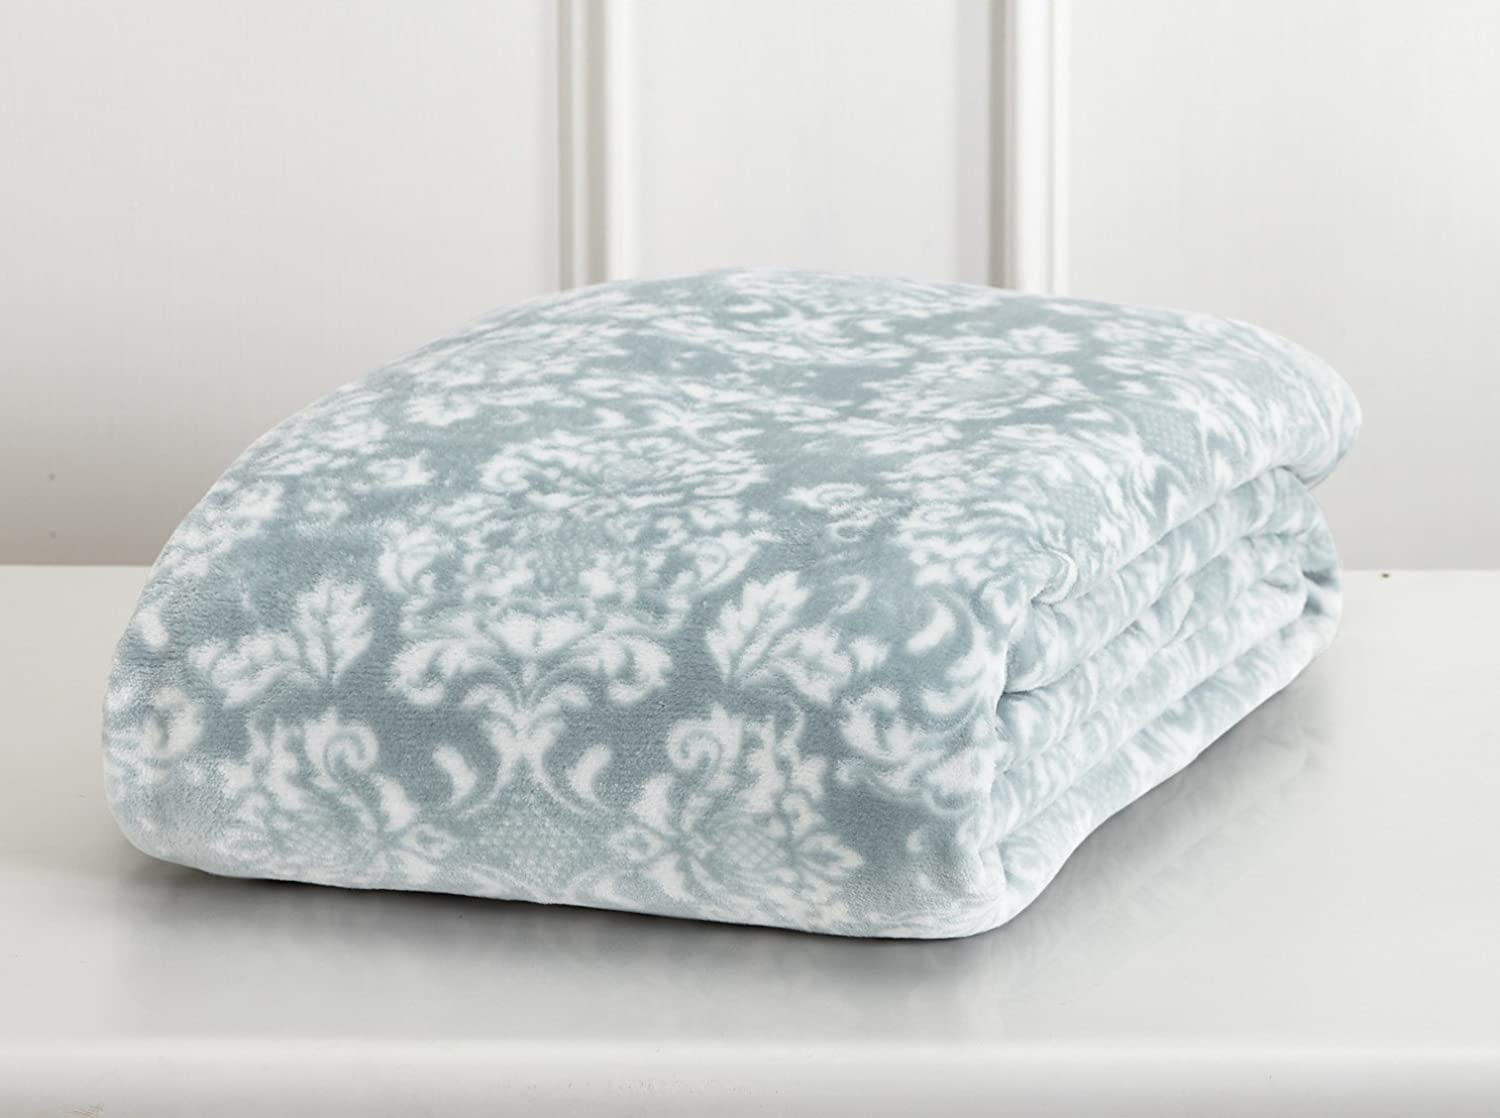 Home Fashion Designs Isabel Collection Ultra Velvet Plush All-Season Super Soft Printed Luxury Bed Blanket. Lightweight and Warm for Ultimate Comfort Brand. (Twin, Smoke Blue)